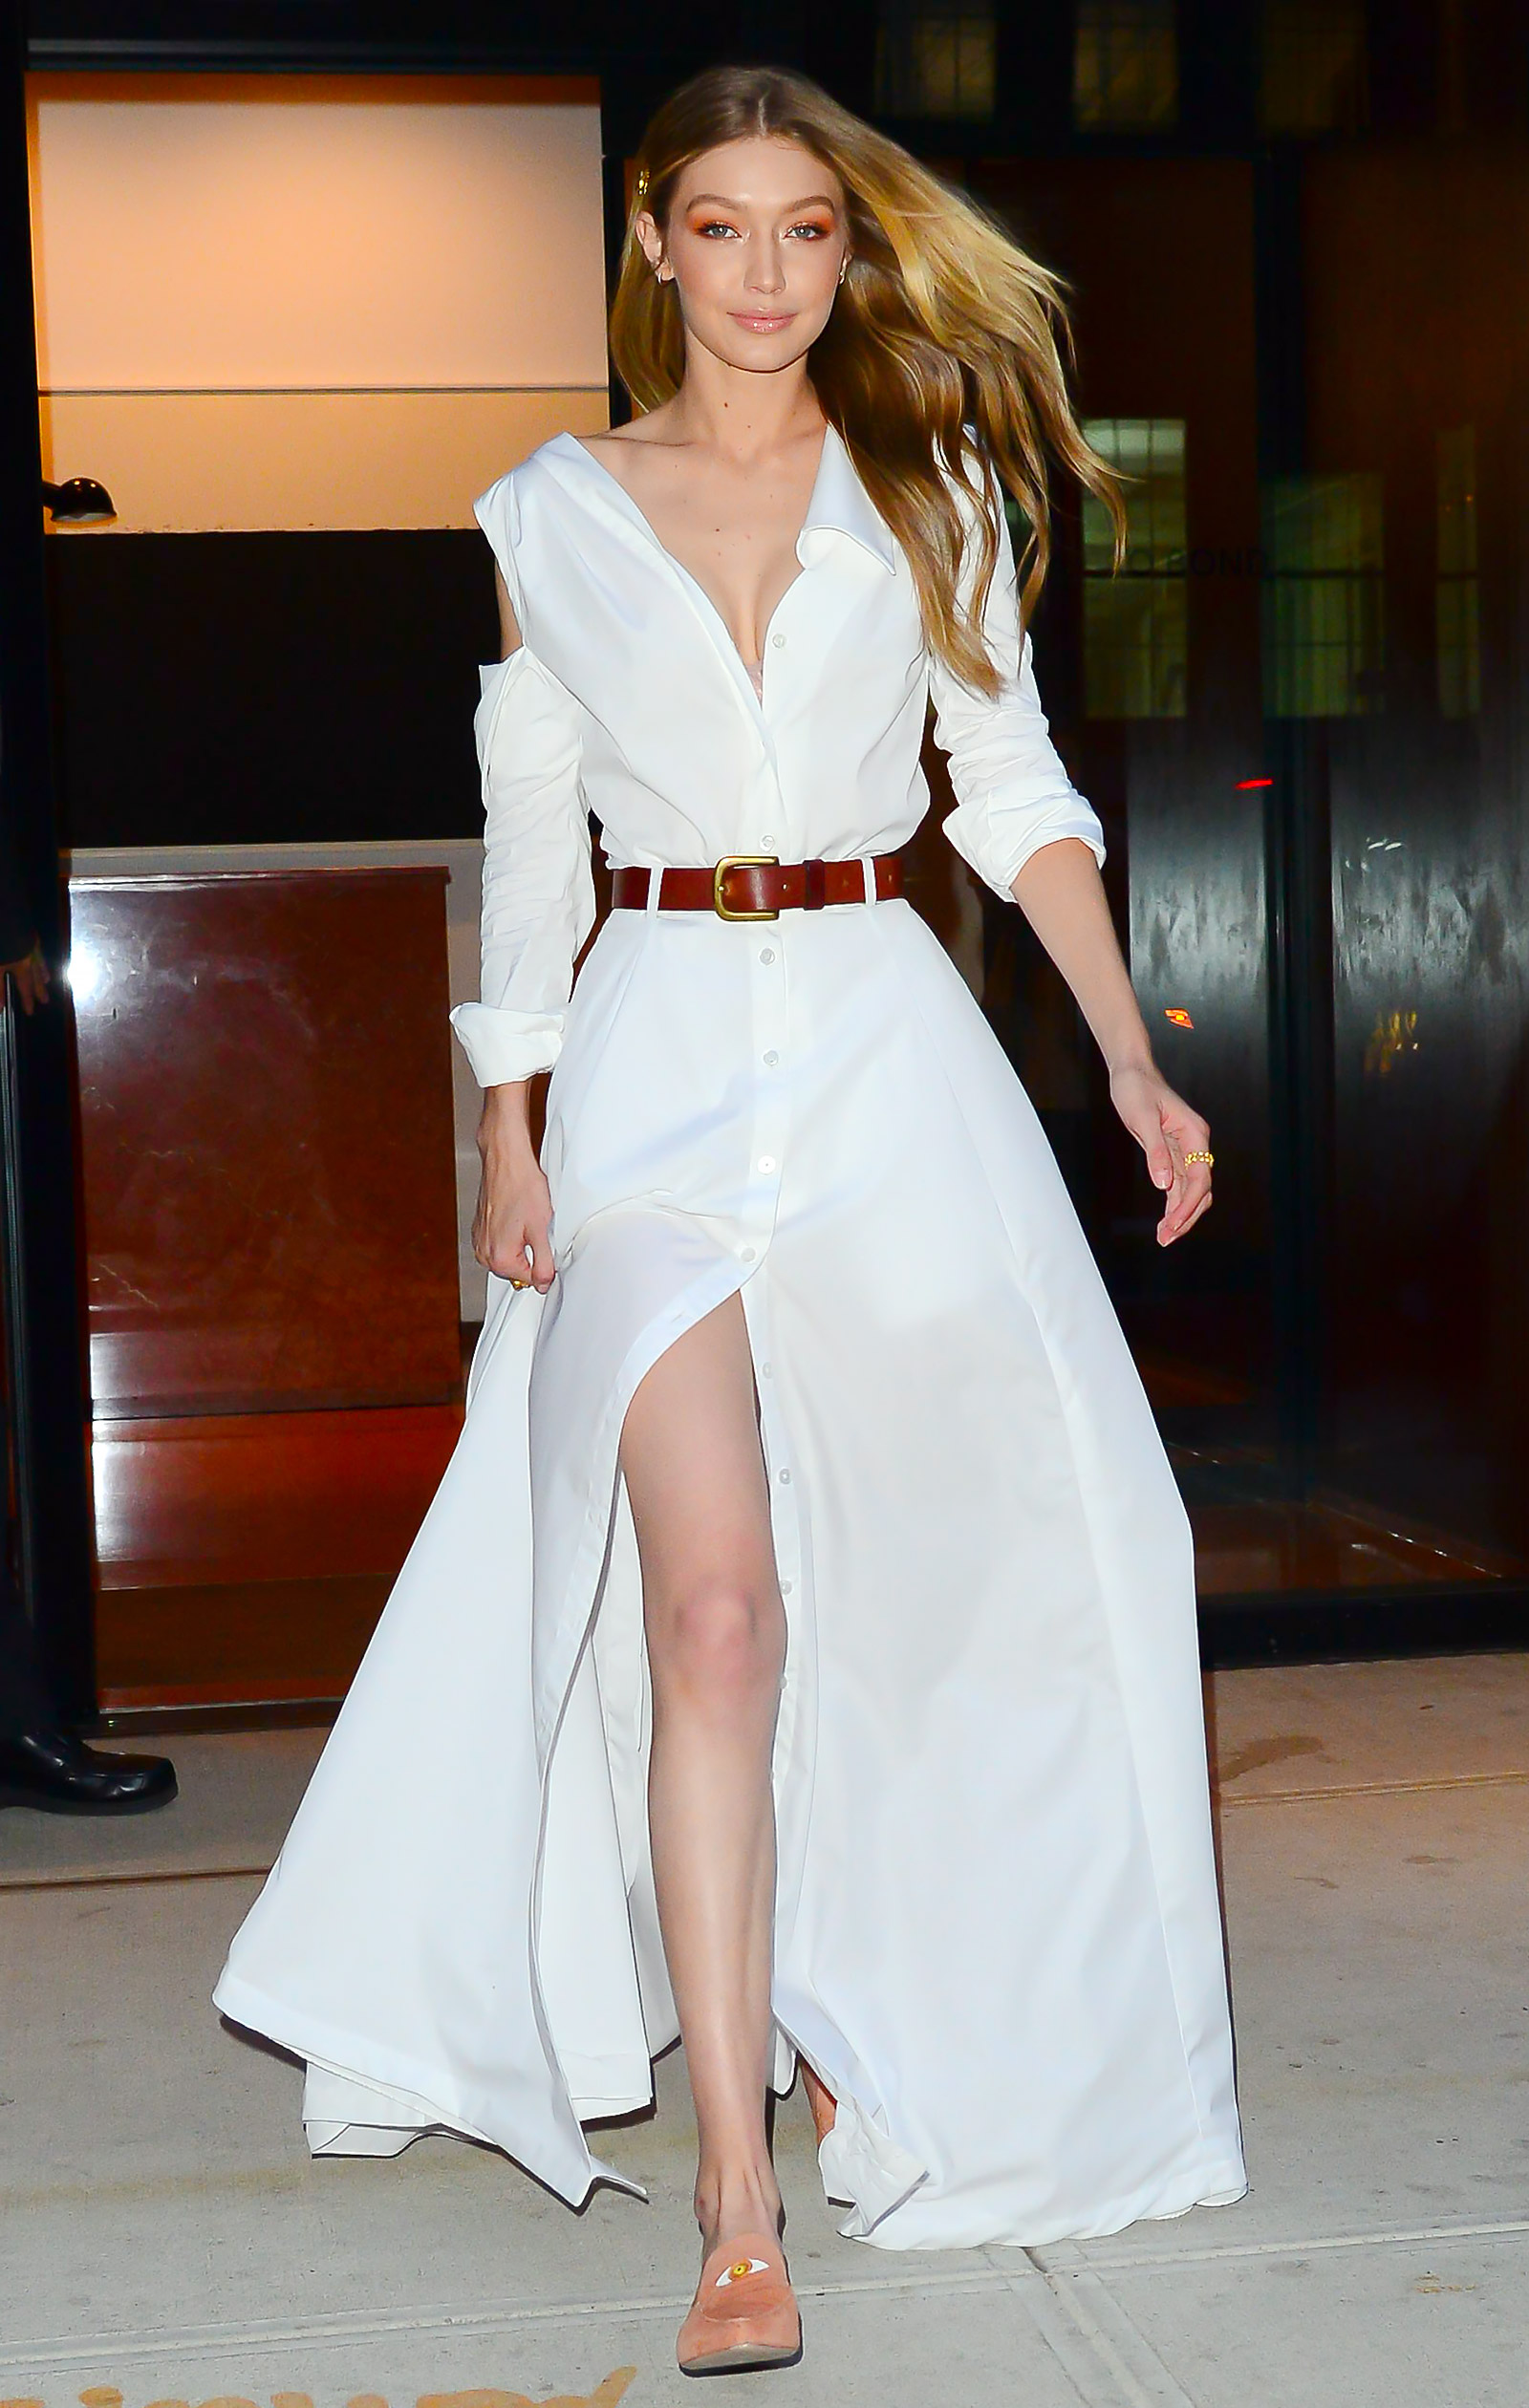 6453bb5fe37 Looking Angelic! Gigi Hadid Wears Two Floaty All White Outfits Ahead ...